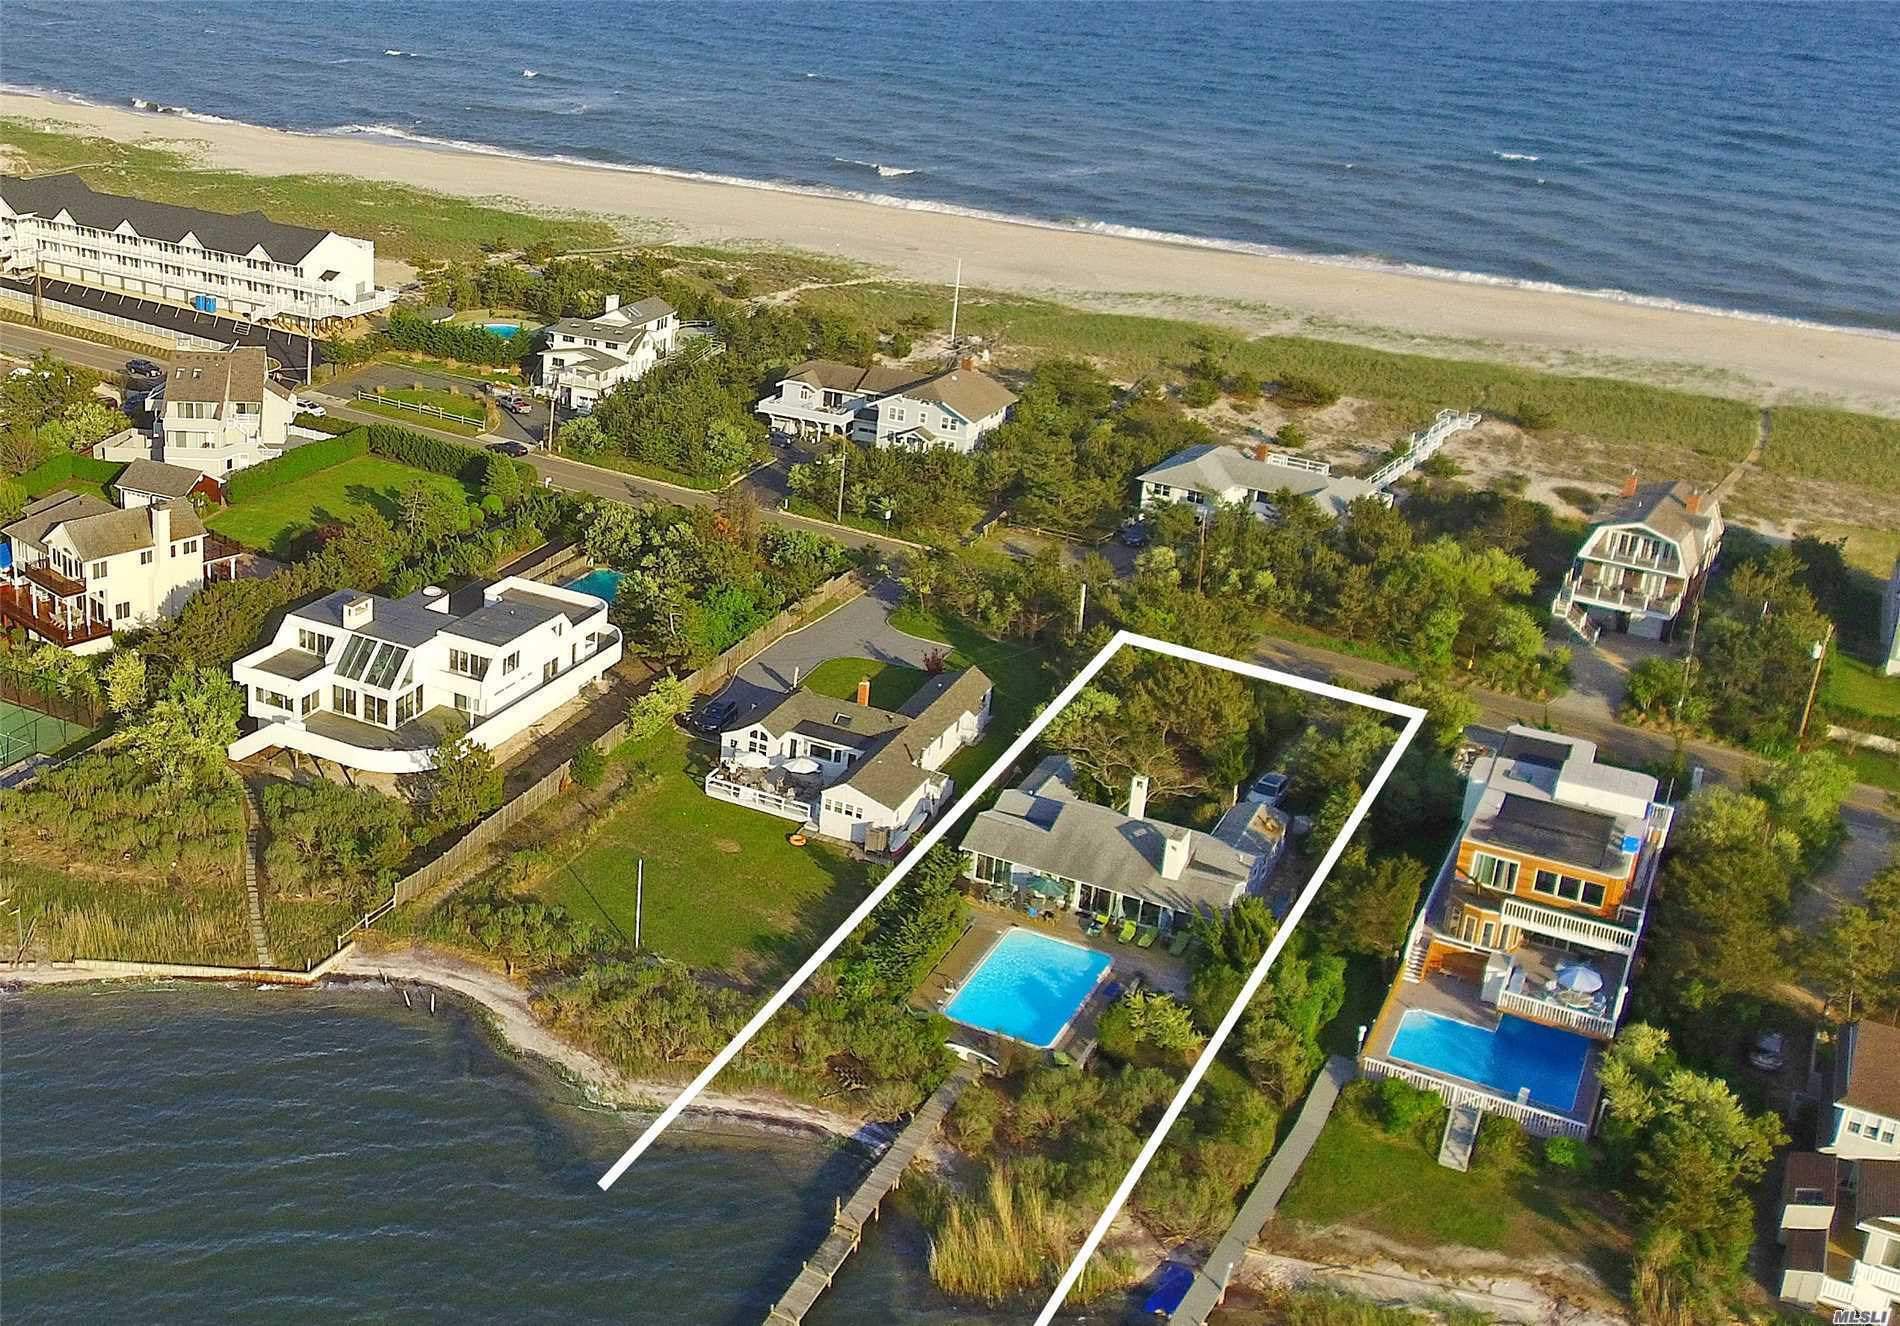 Great Rental Track Record For This Very Private Bay Front Home On Dune Road Offers Living Room, Dining Area, Updated Kitchen, Two Master Bedrooms With Baths, 2 Additional Guest Rooms And 2 Additional Full Baths, Pool. Private Walkway Steps To Ocean Beach. It Offers Extremely Rare Privacy On Dune Road Front And Back, A Boat Dock In Your Backyard. Watch The Sun Set From Your Own Private Beach On The Bay!